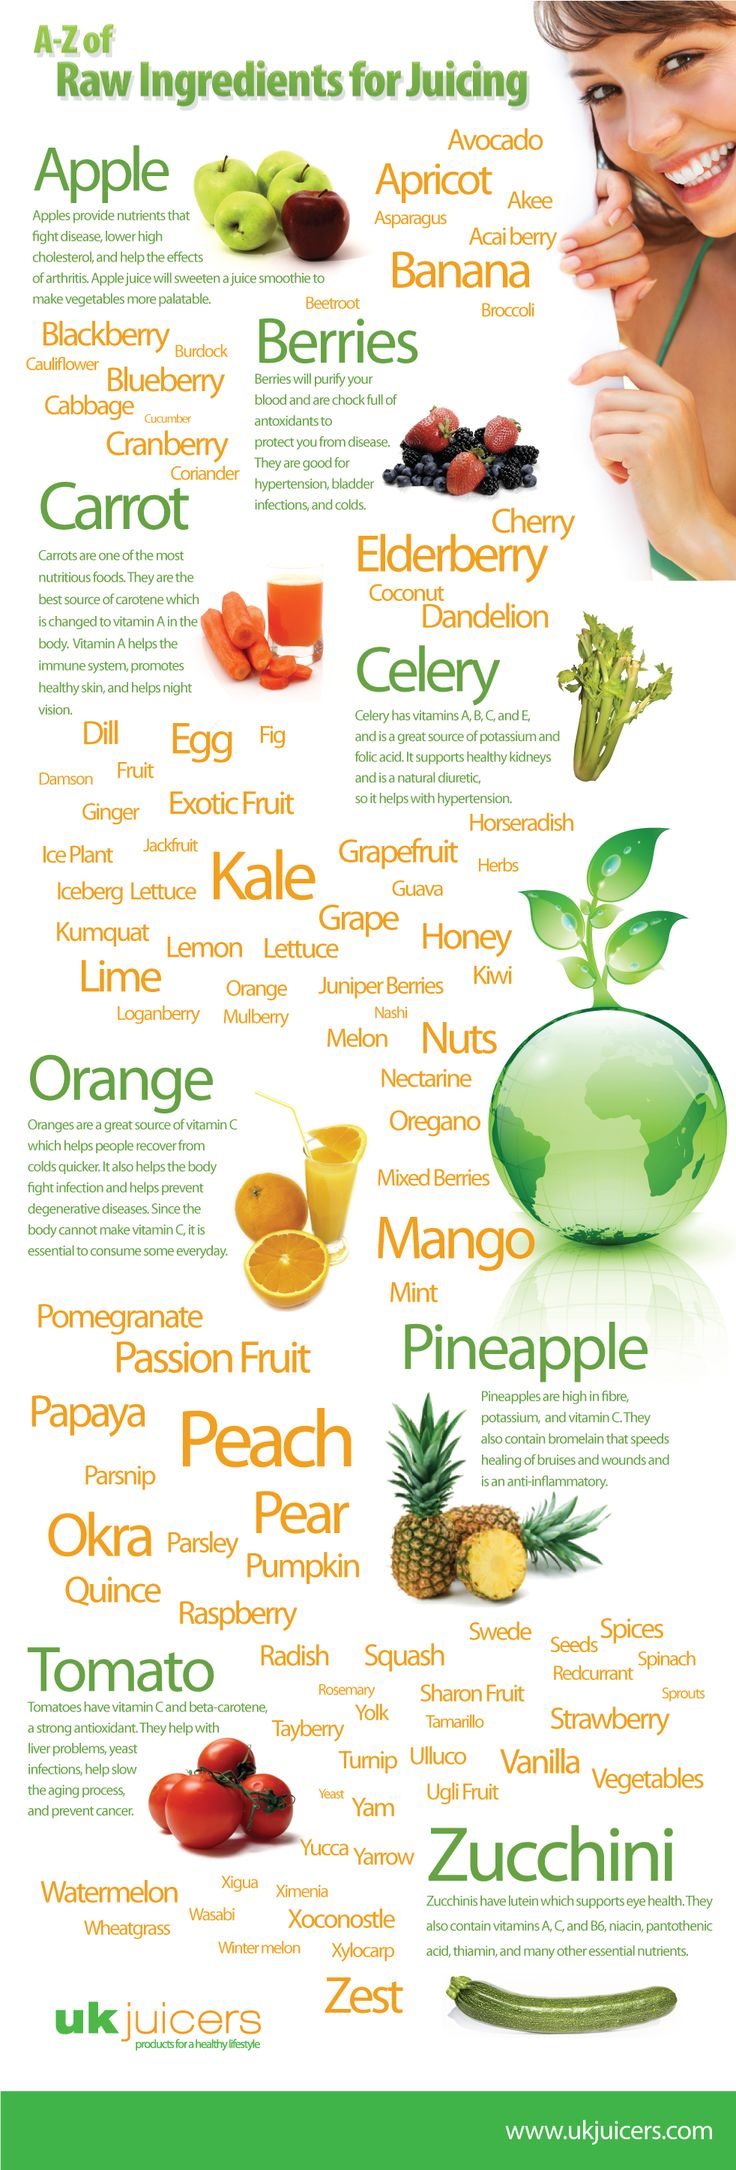 INFOGRAPHIC: A-Z of Raw Indredients for Juicing